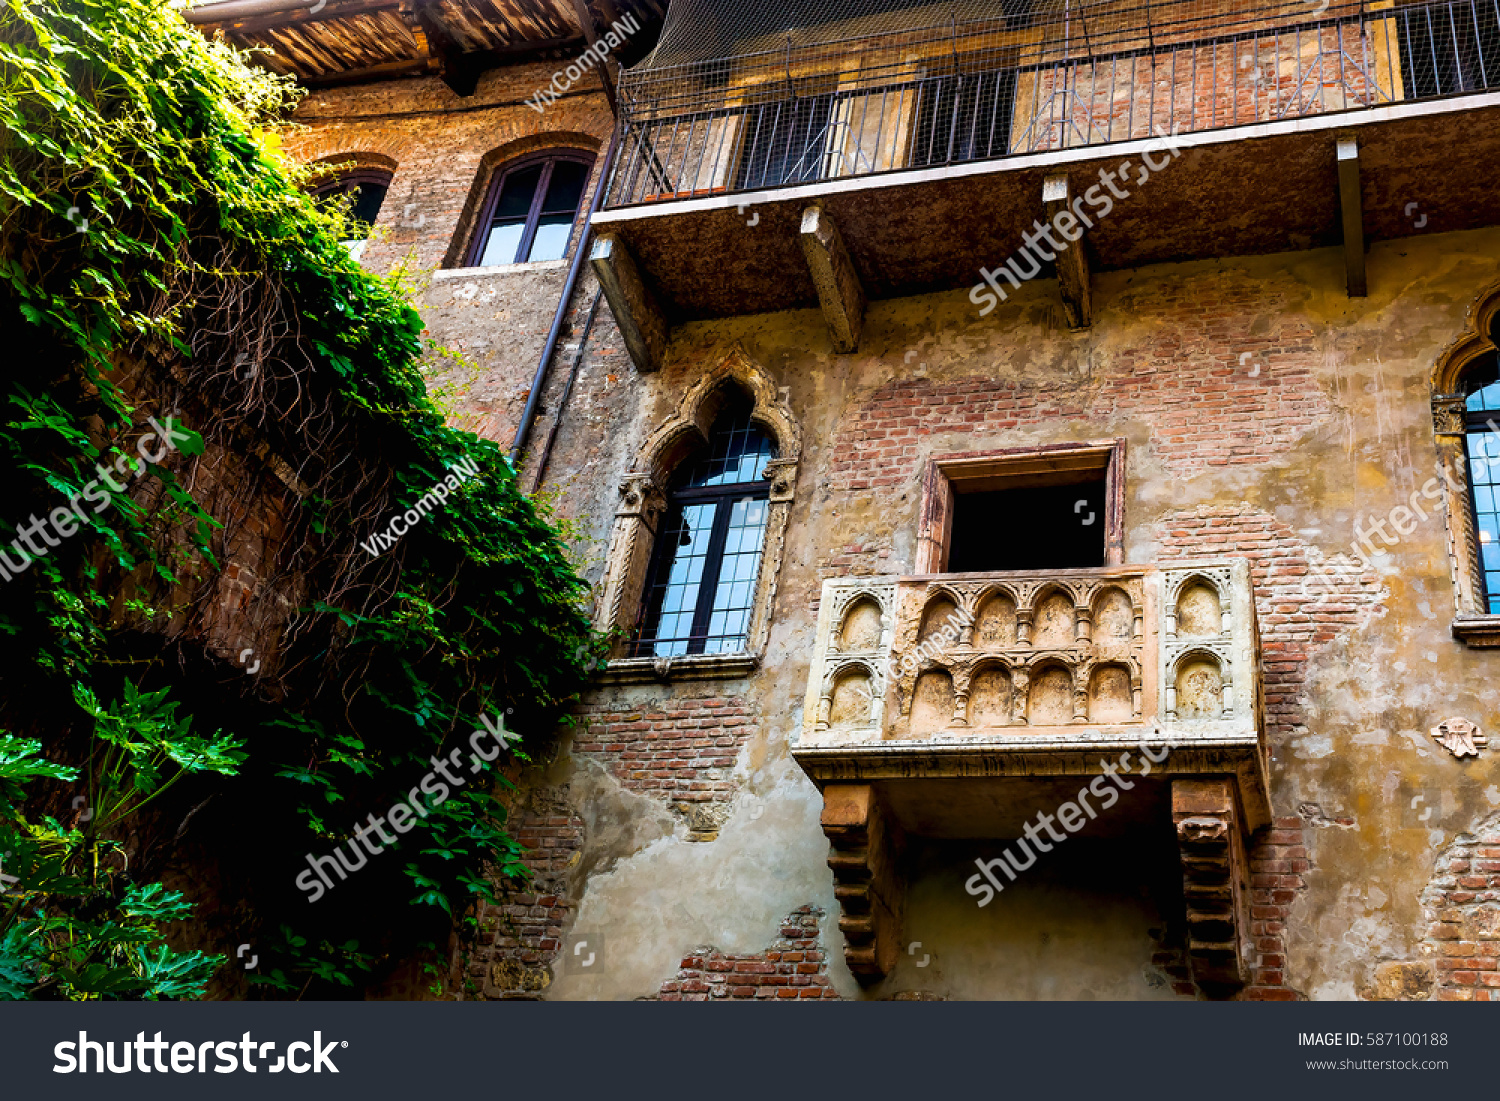 Photo famous facade building juliet balcony stock photo for Famous balcony